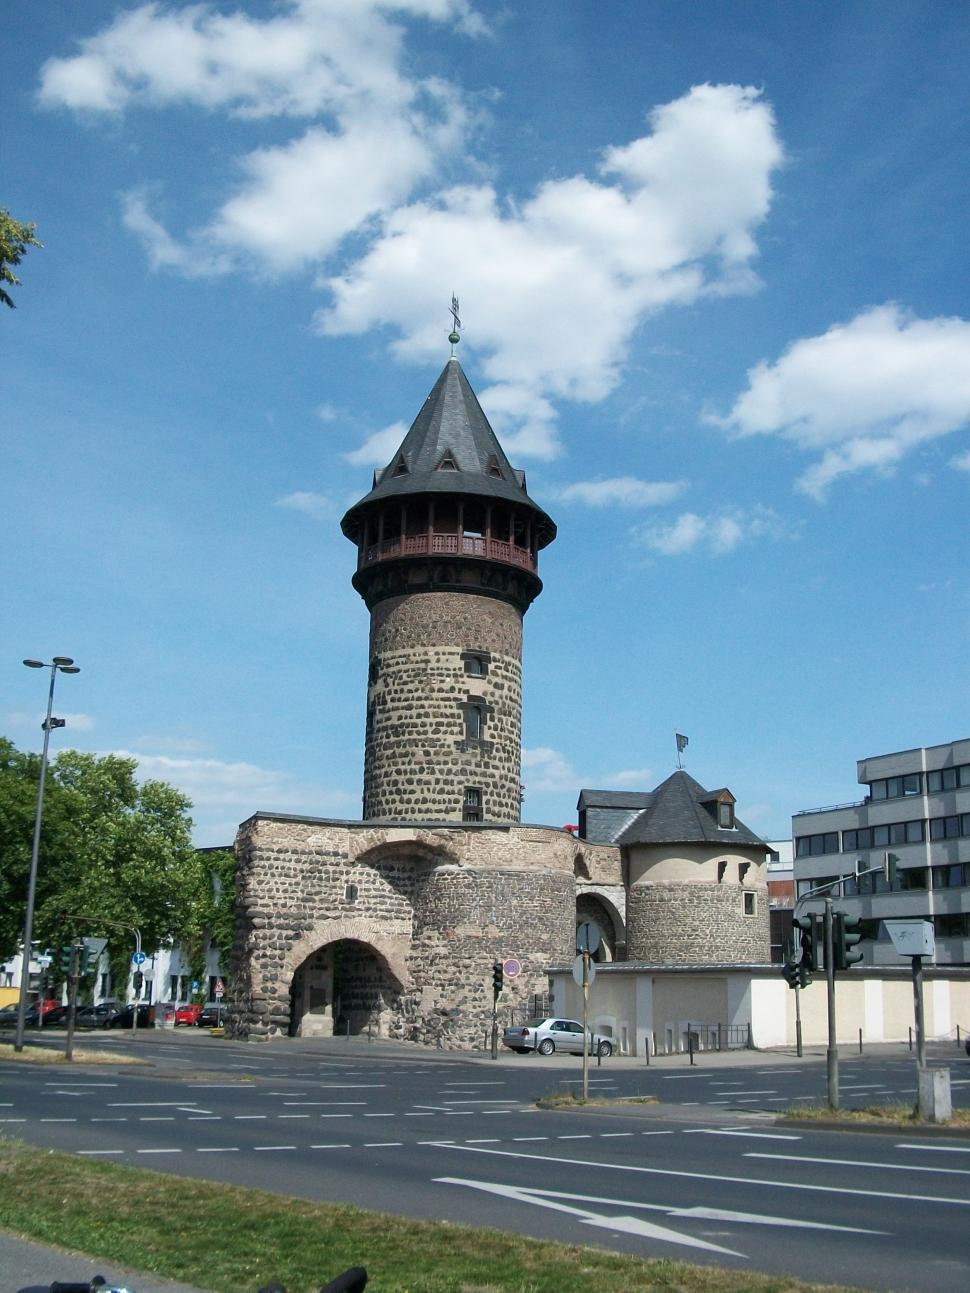 Download Free Stock HD Photo of Old Roman Gate in Cologne, Germany Online